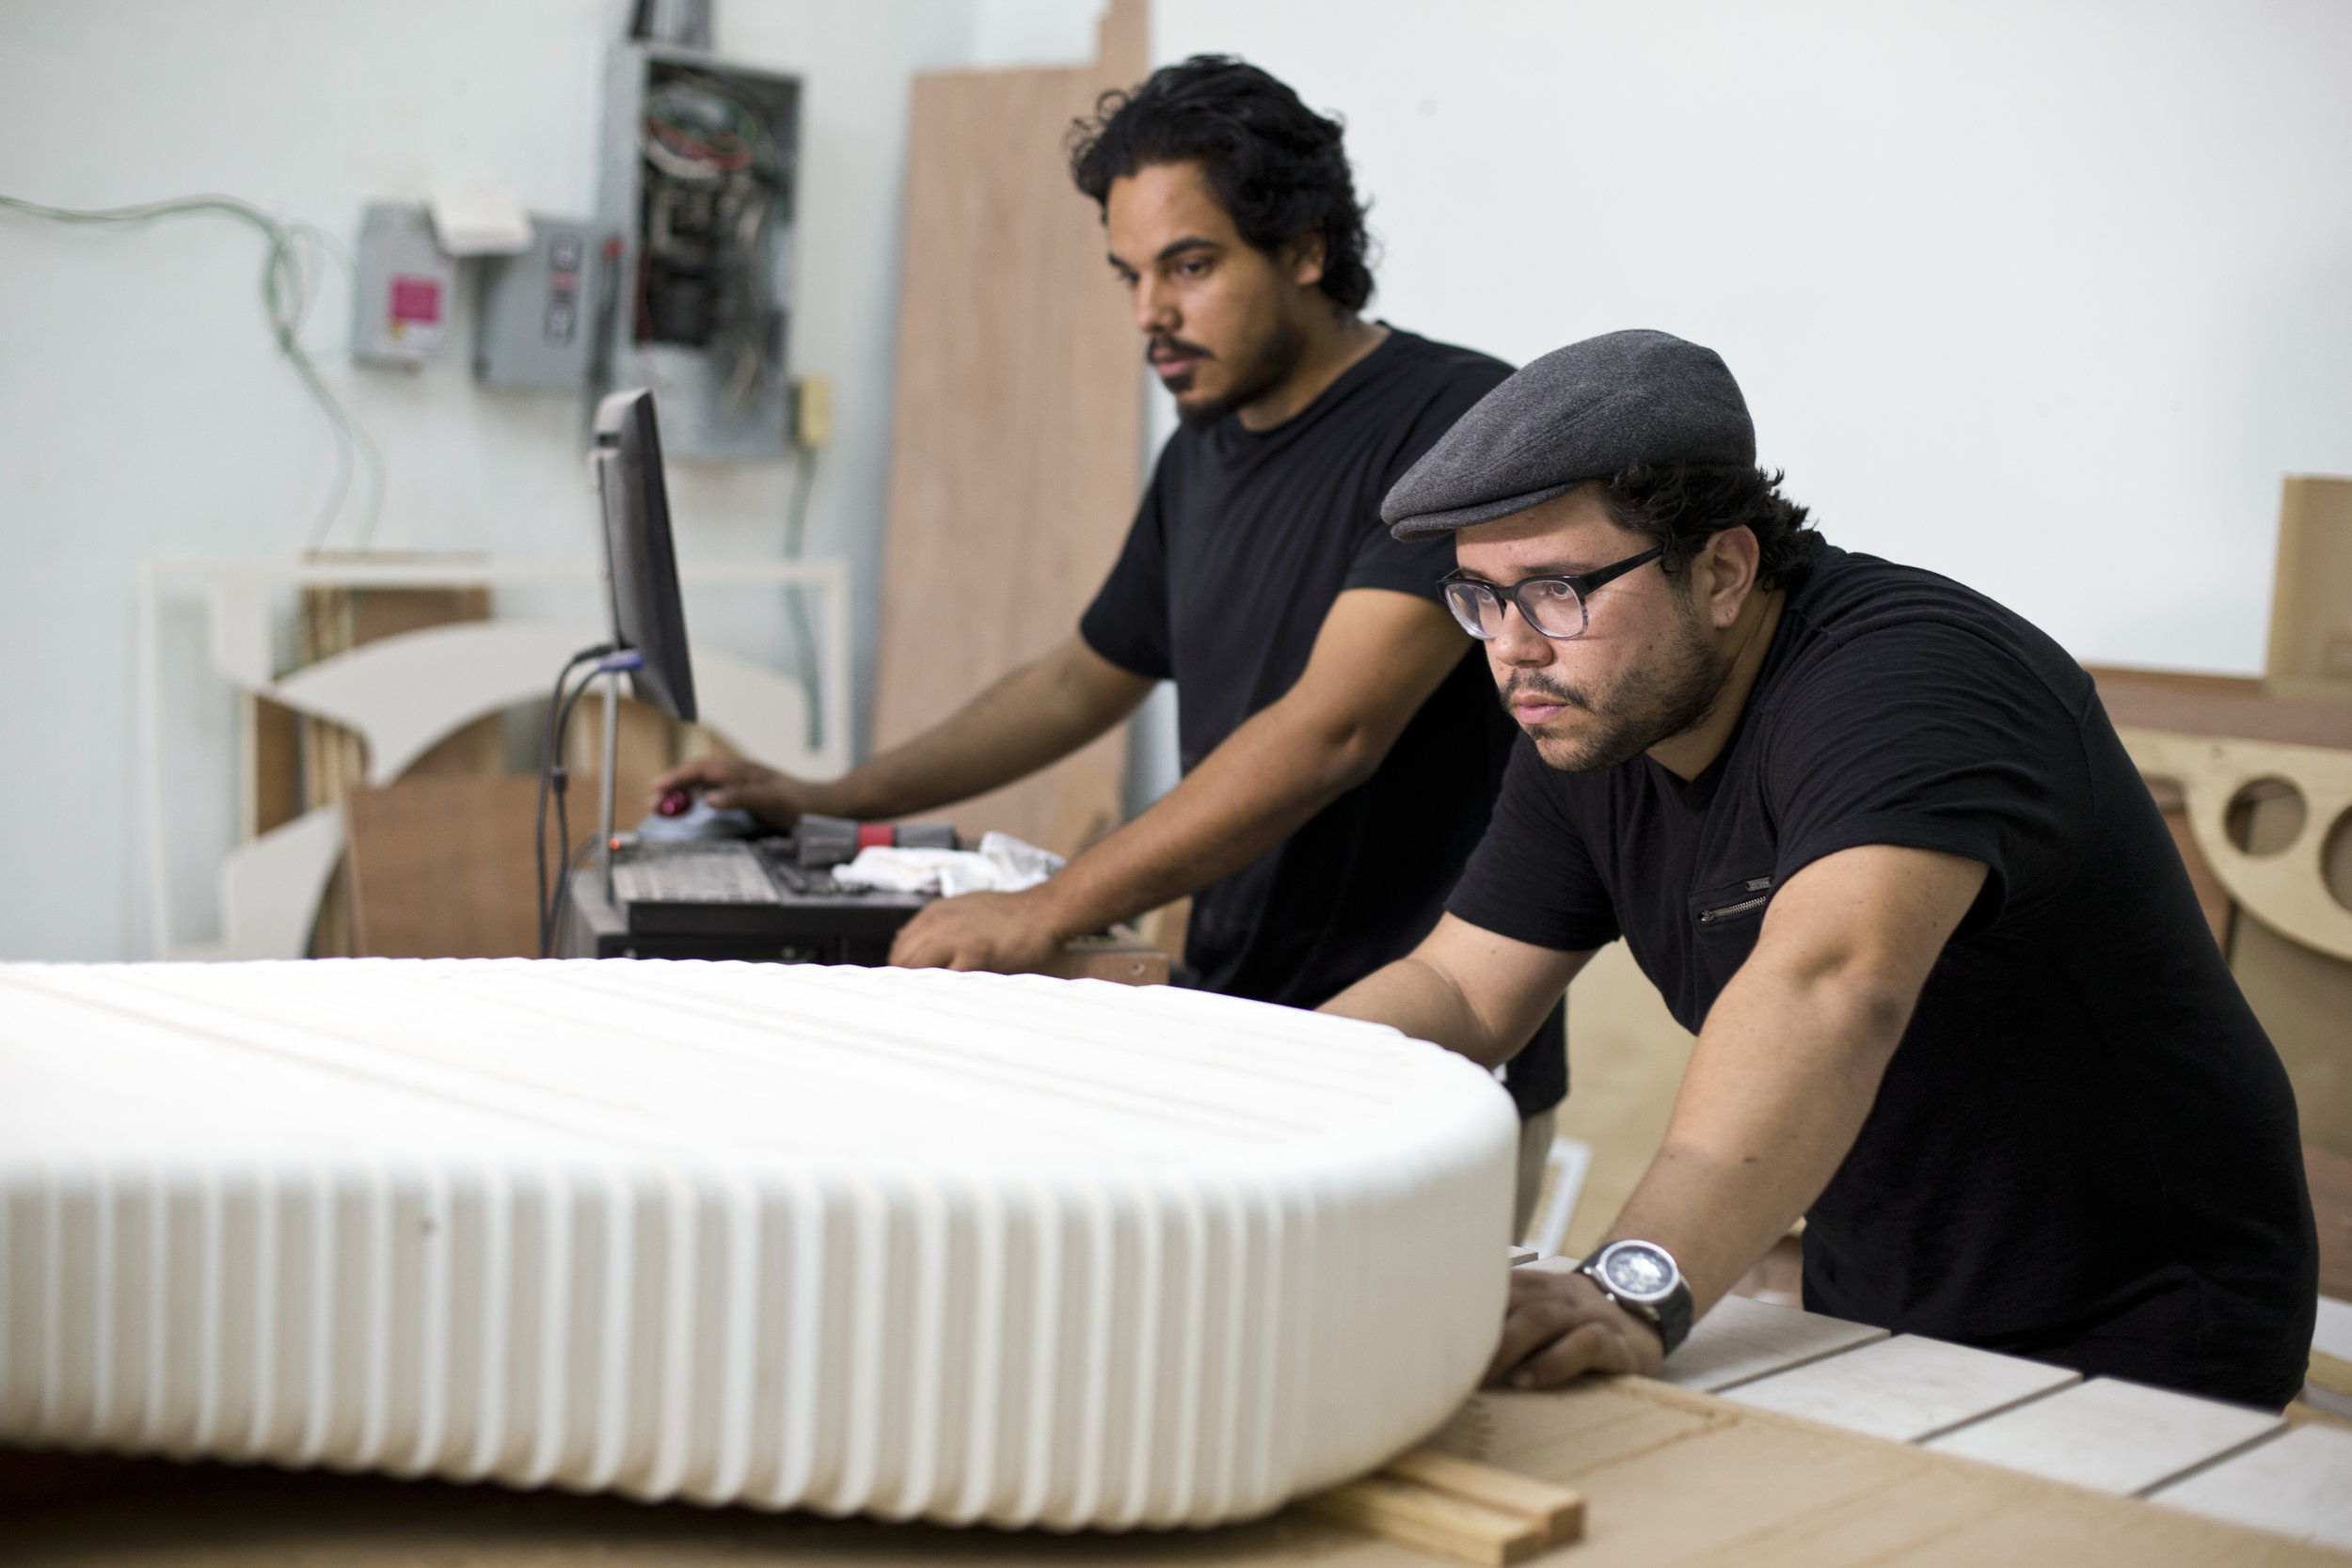 Javier (left) and Oscar (right) in Constructo's workshop. 2012